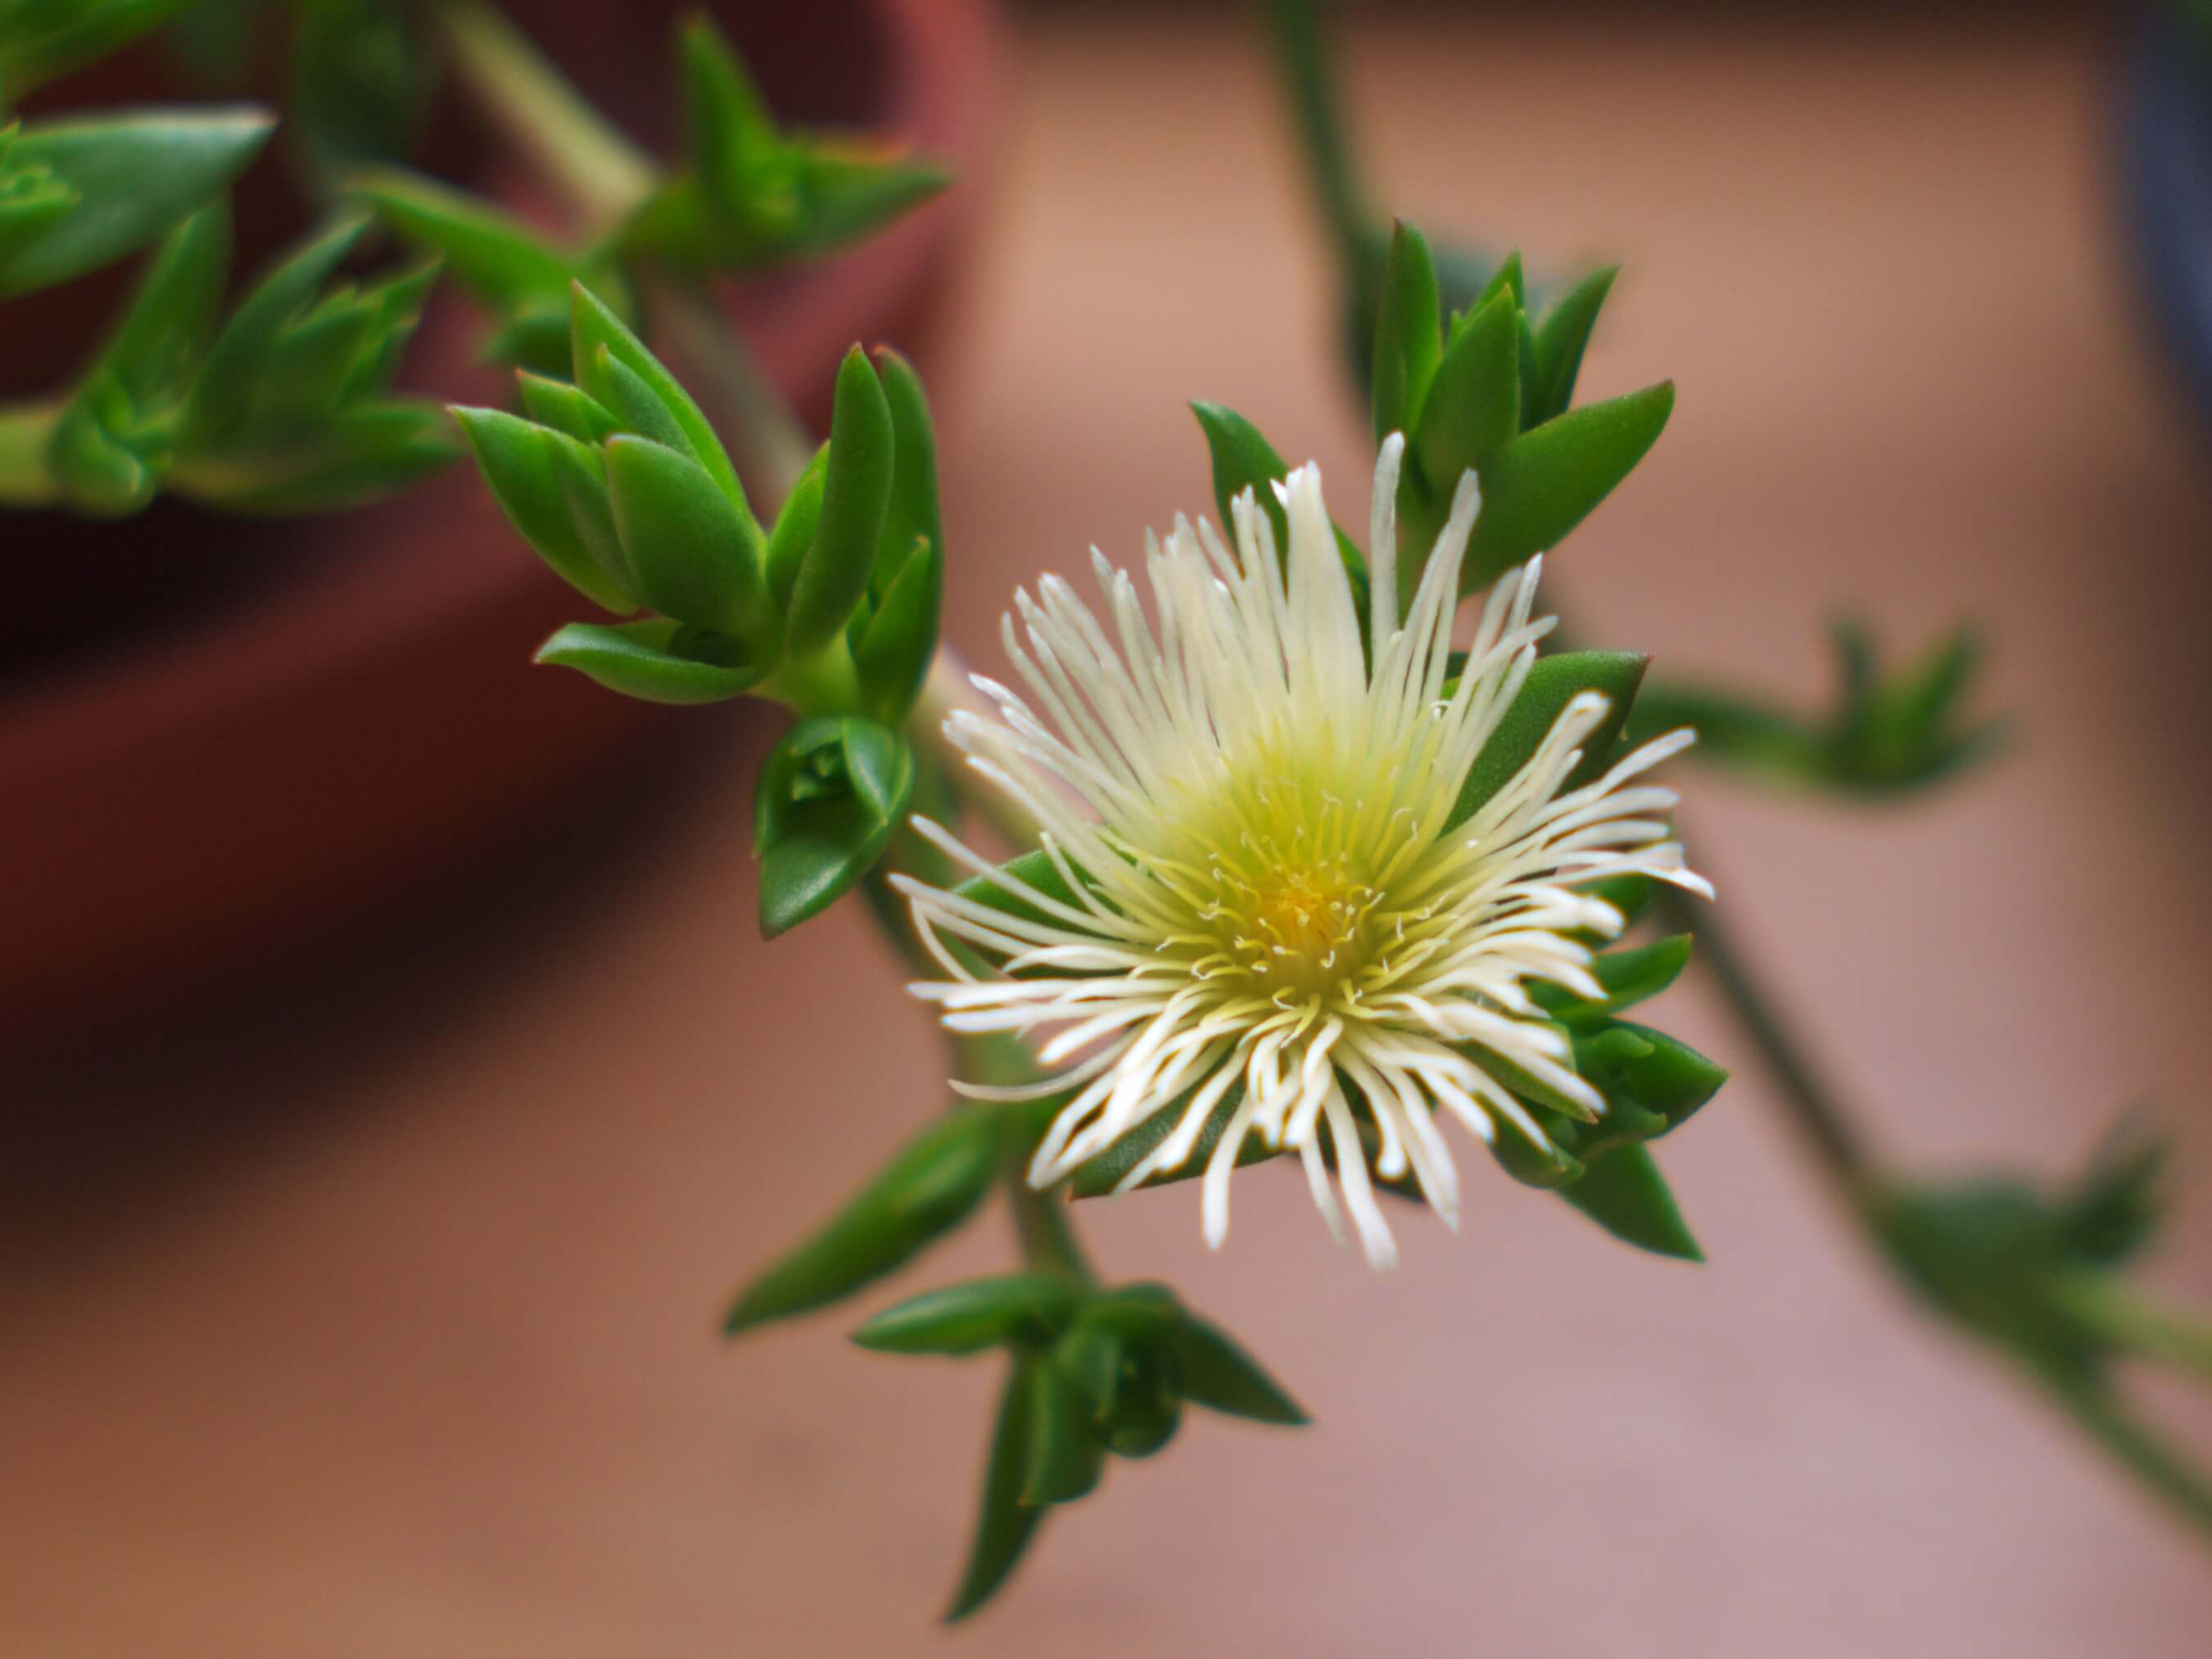 4 Sceletium tortuosum (Kanna) Benefits + Safety & Side Effects - SelfHacked